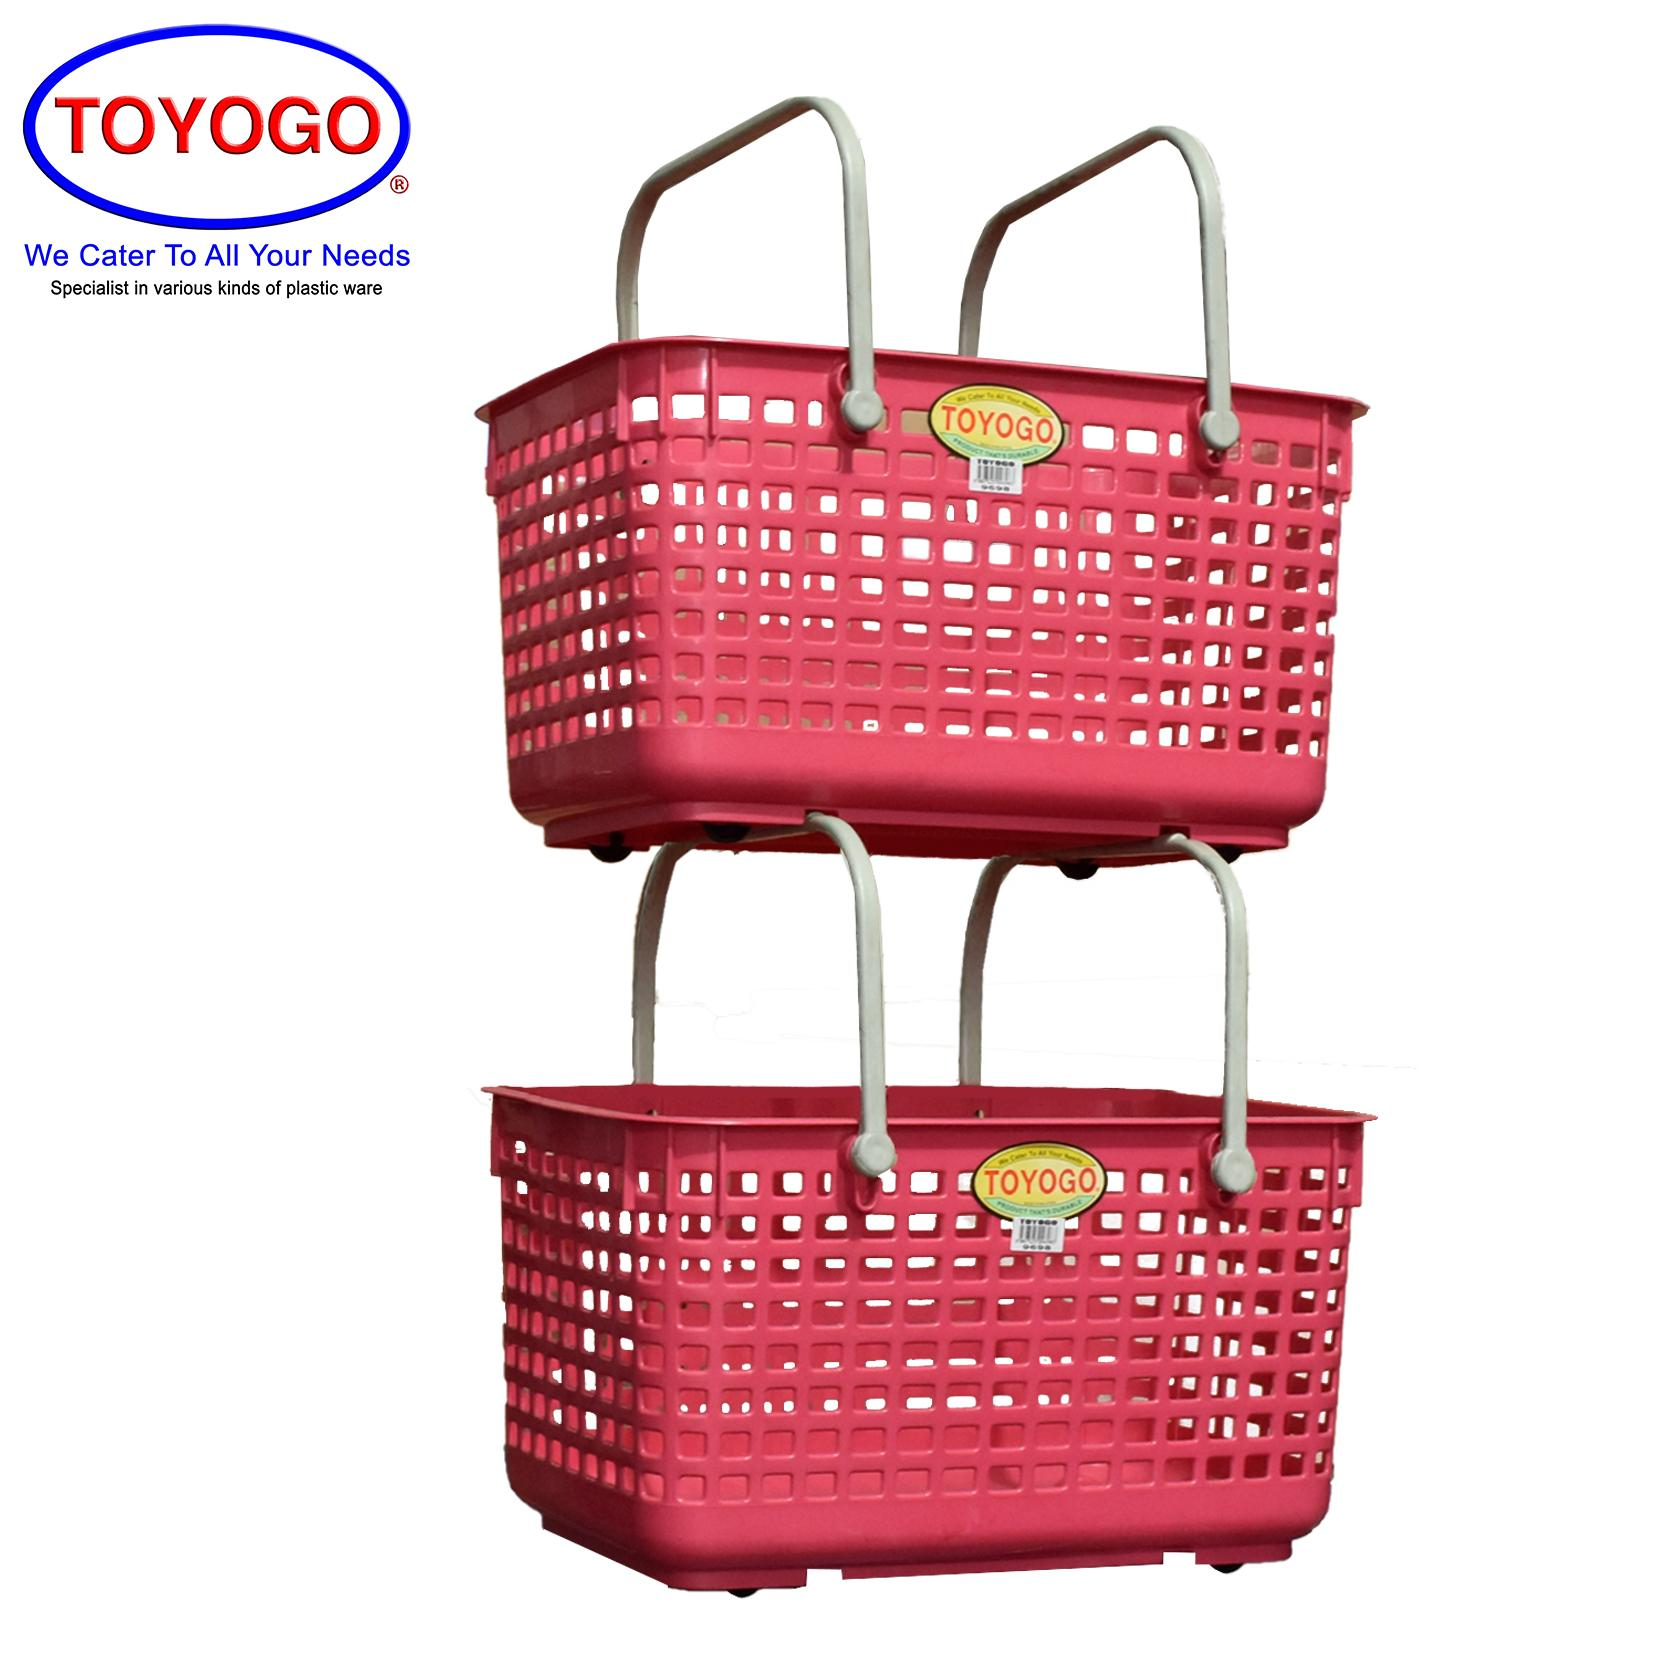 Toyogo Stackable Basket (Bundle of 2) (9698)